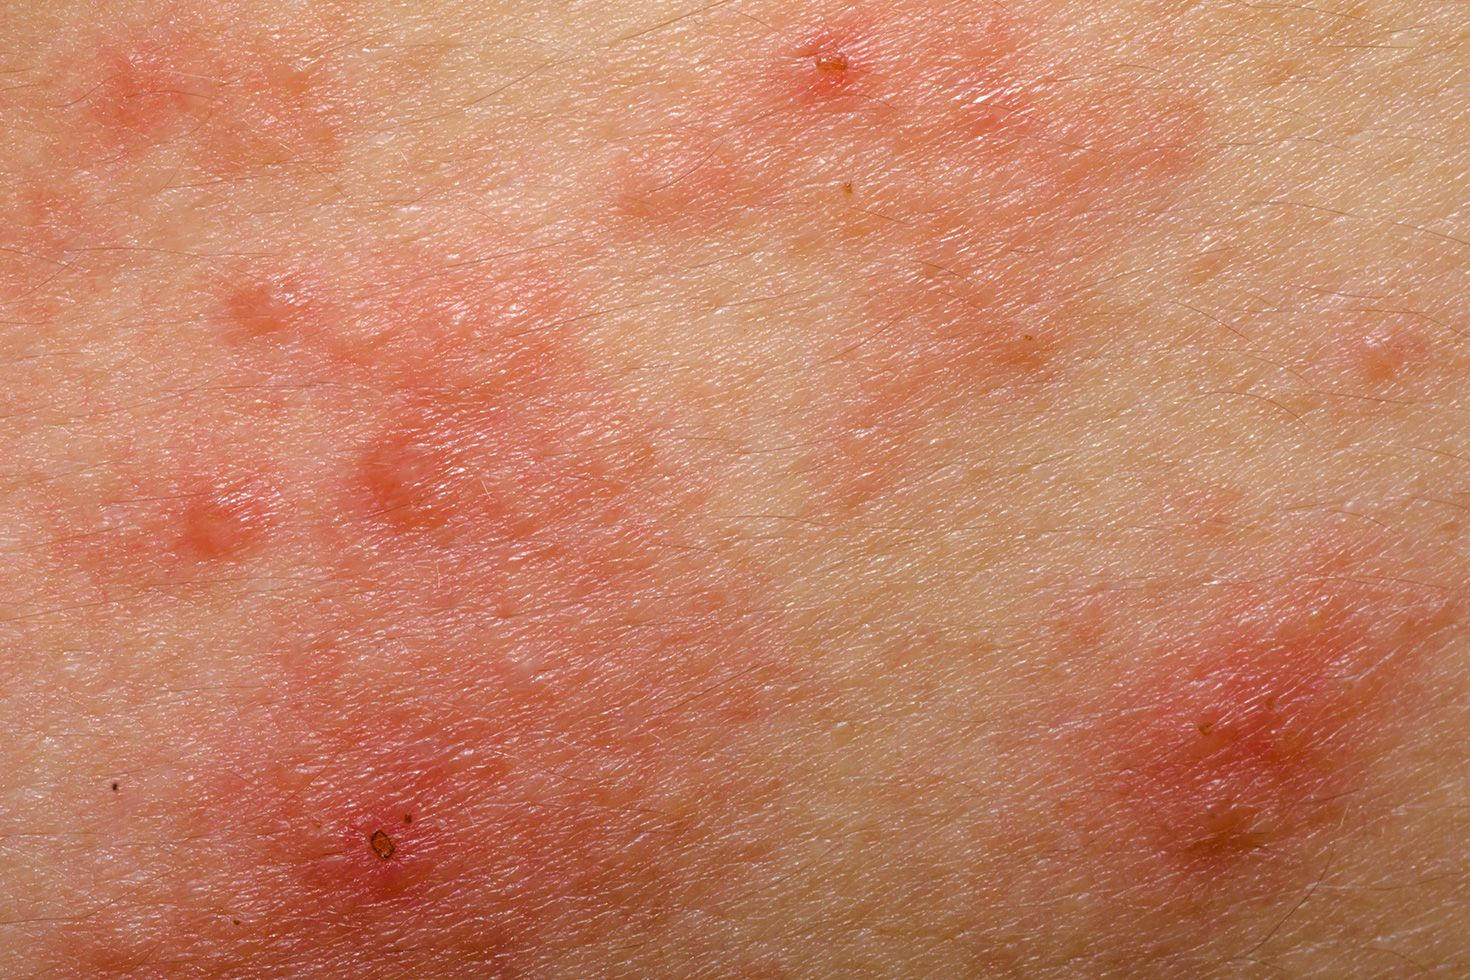 Rash on my anus